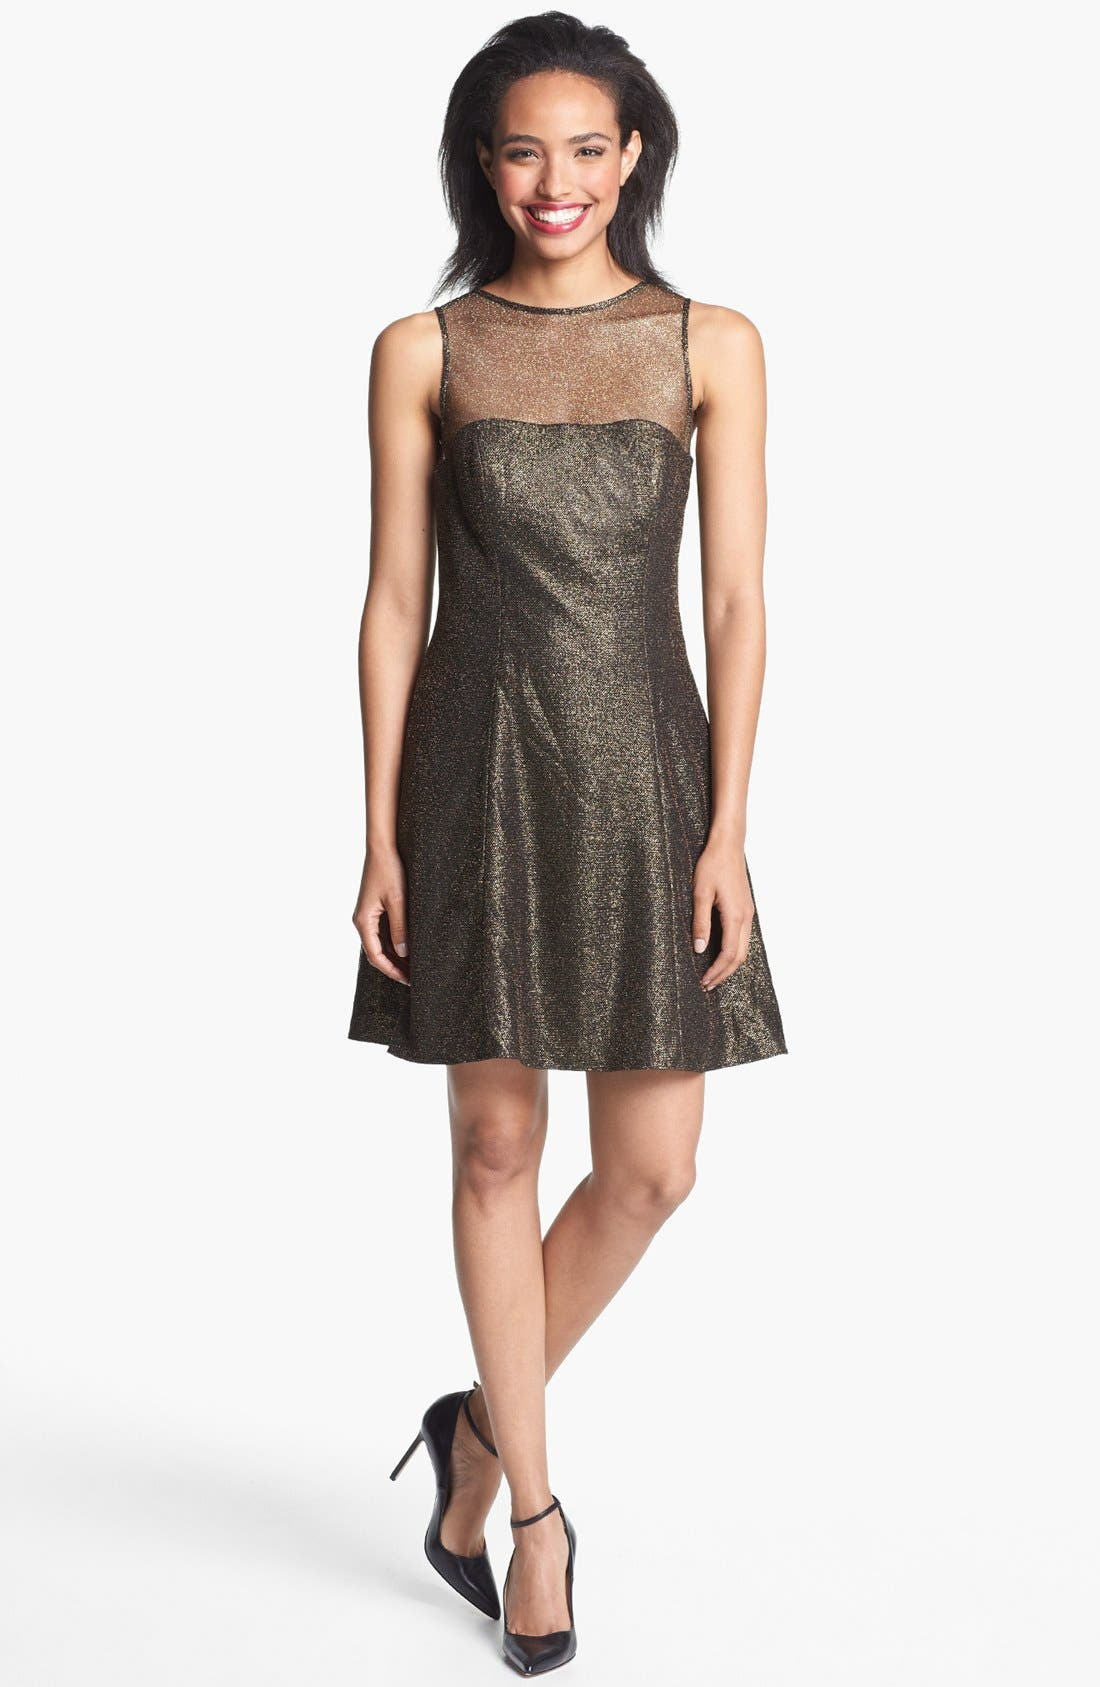 Alternate Image 1 Selected - Aidan by Aidan Mattox Metallic Skater Dress